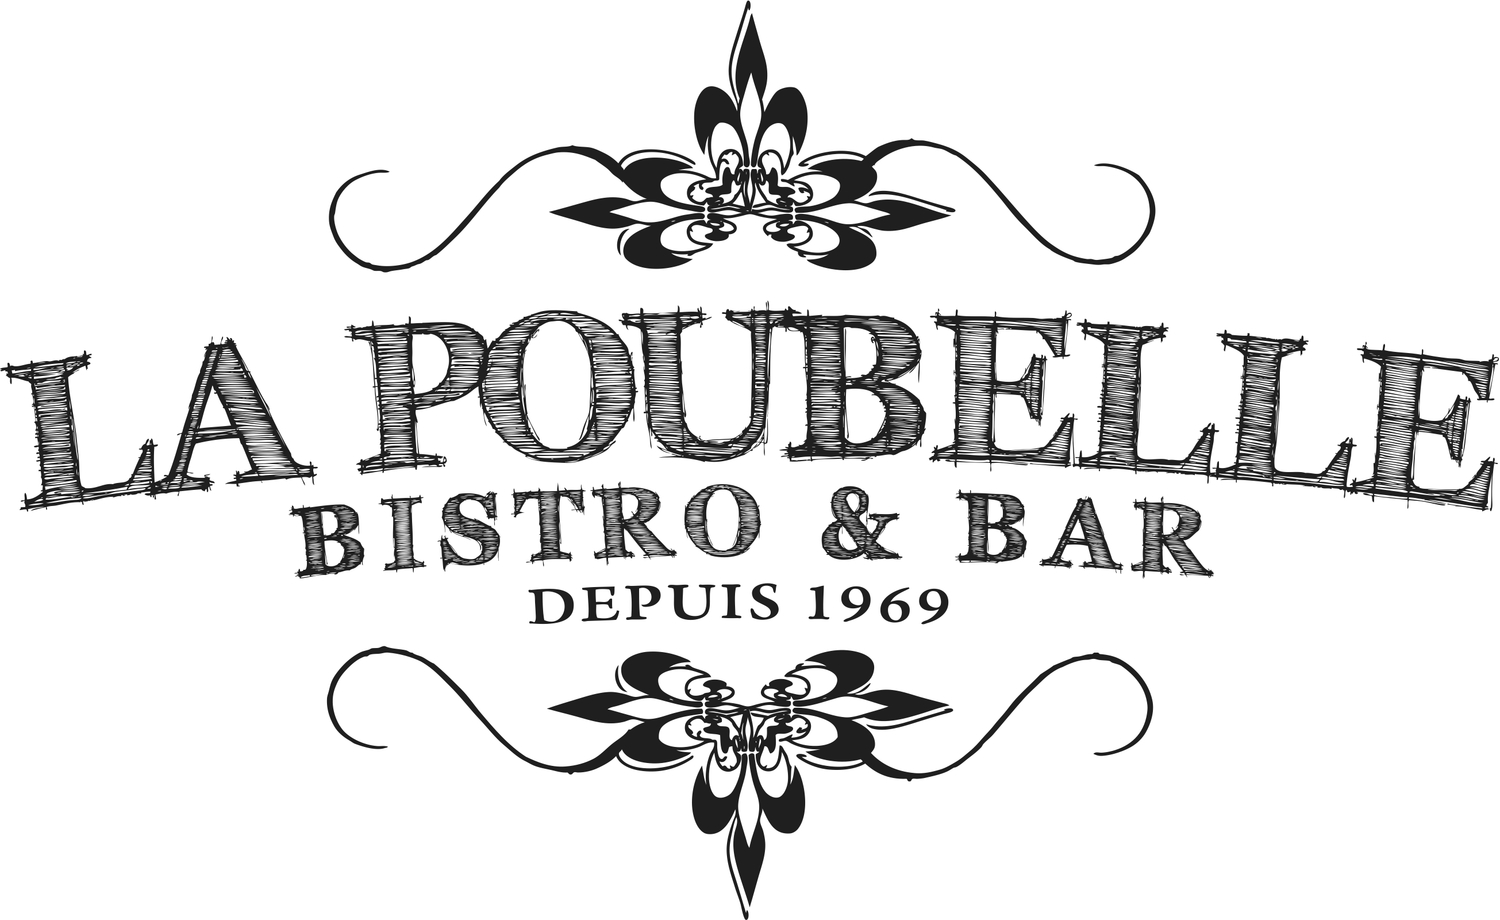 La Poubelle Bistro & Bar - Hollywood - Los Angeles, California